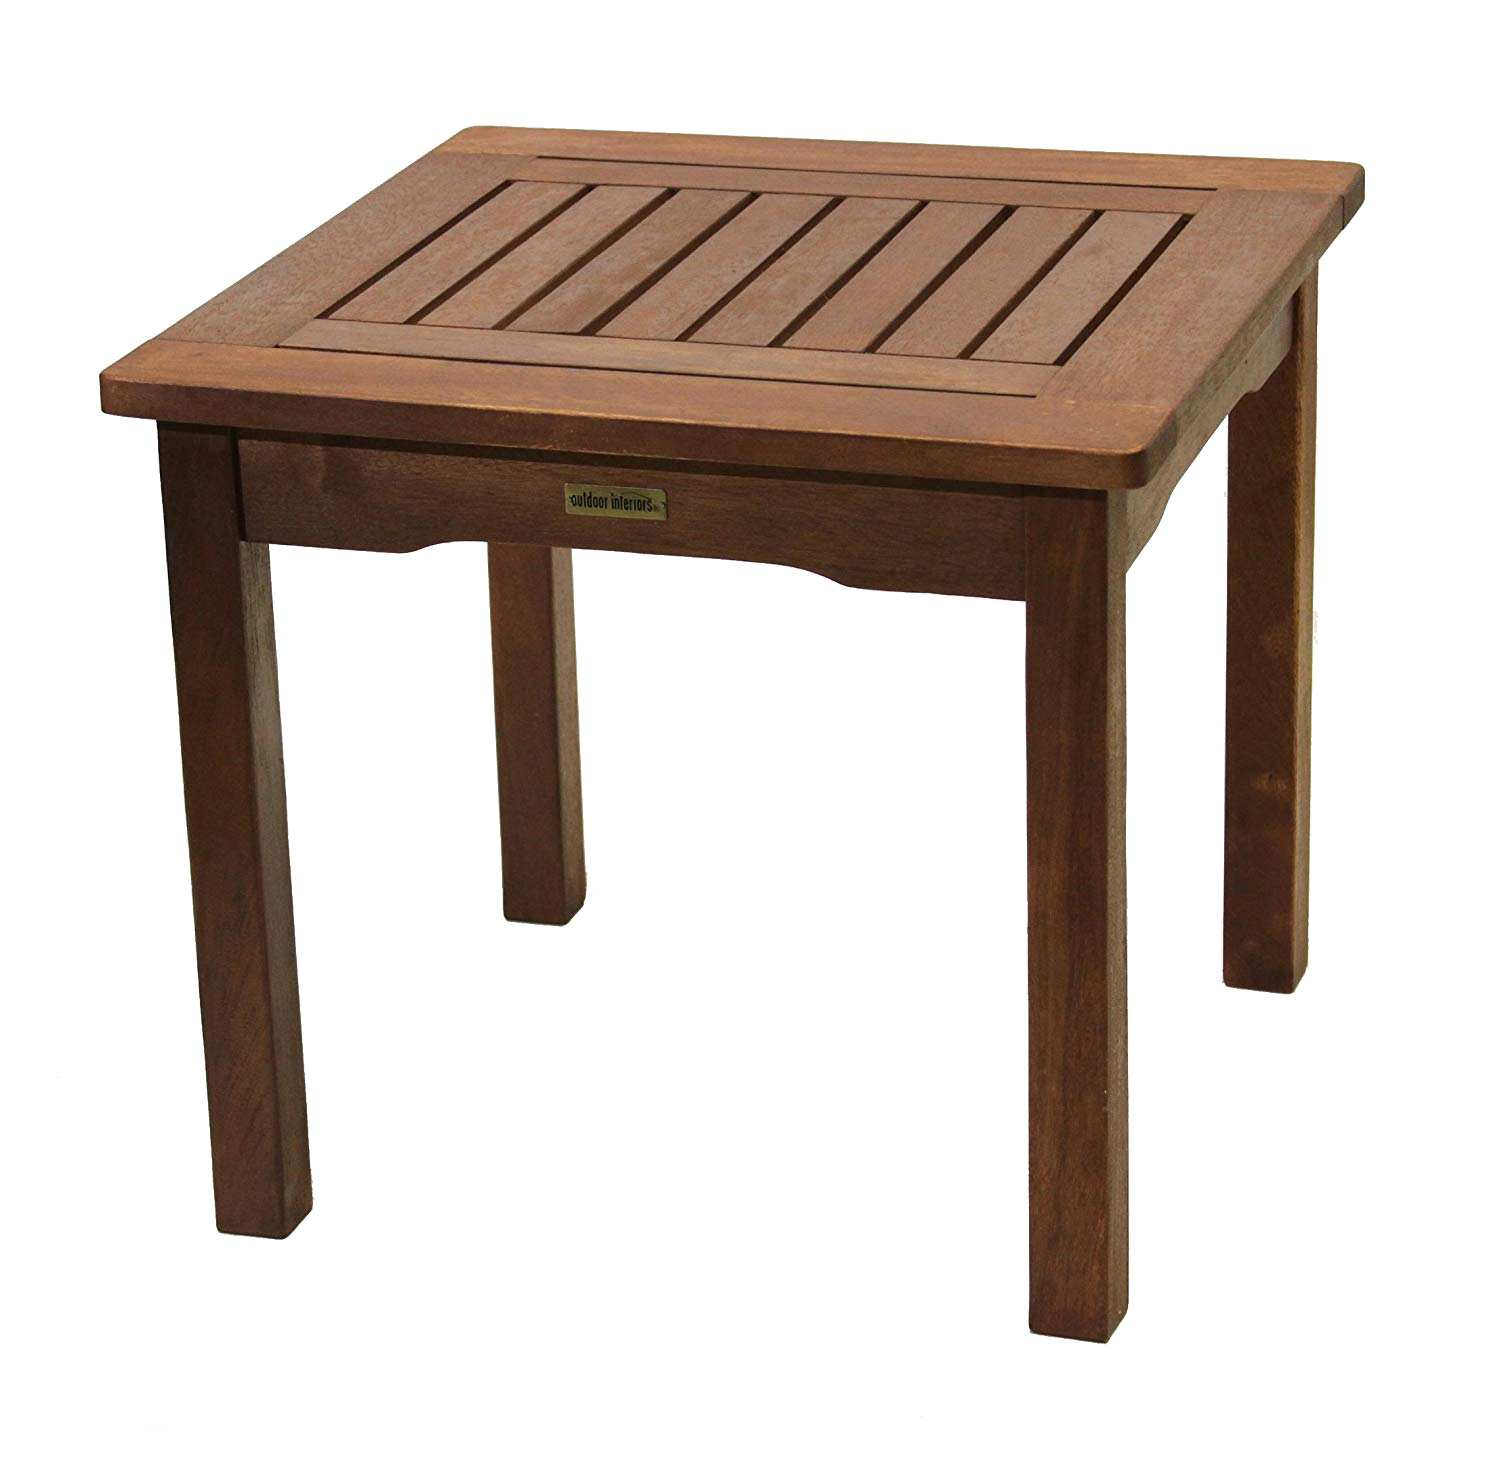 stunning outdoor patio side table hampton bay jackson lovely with all weather end eucalyptus easy assembly garden accent pier beds wooden furniture bangalore dining room edmonton